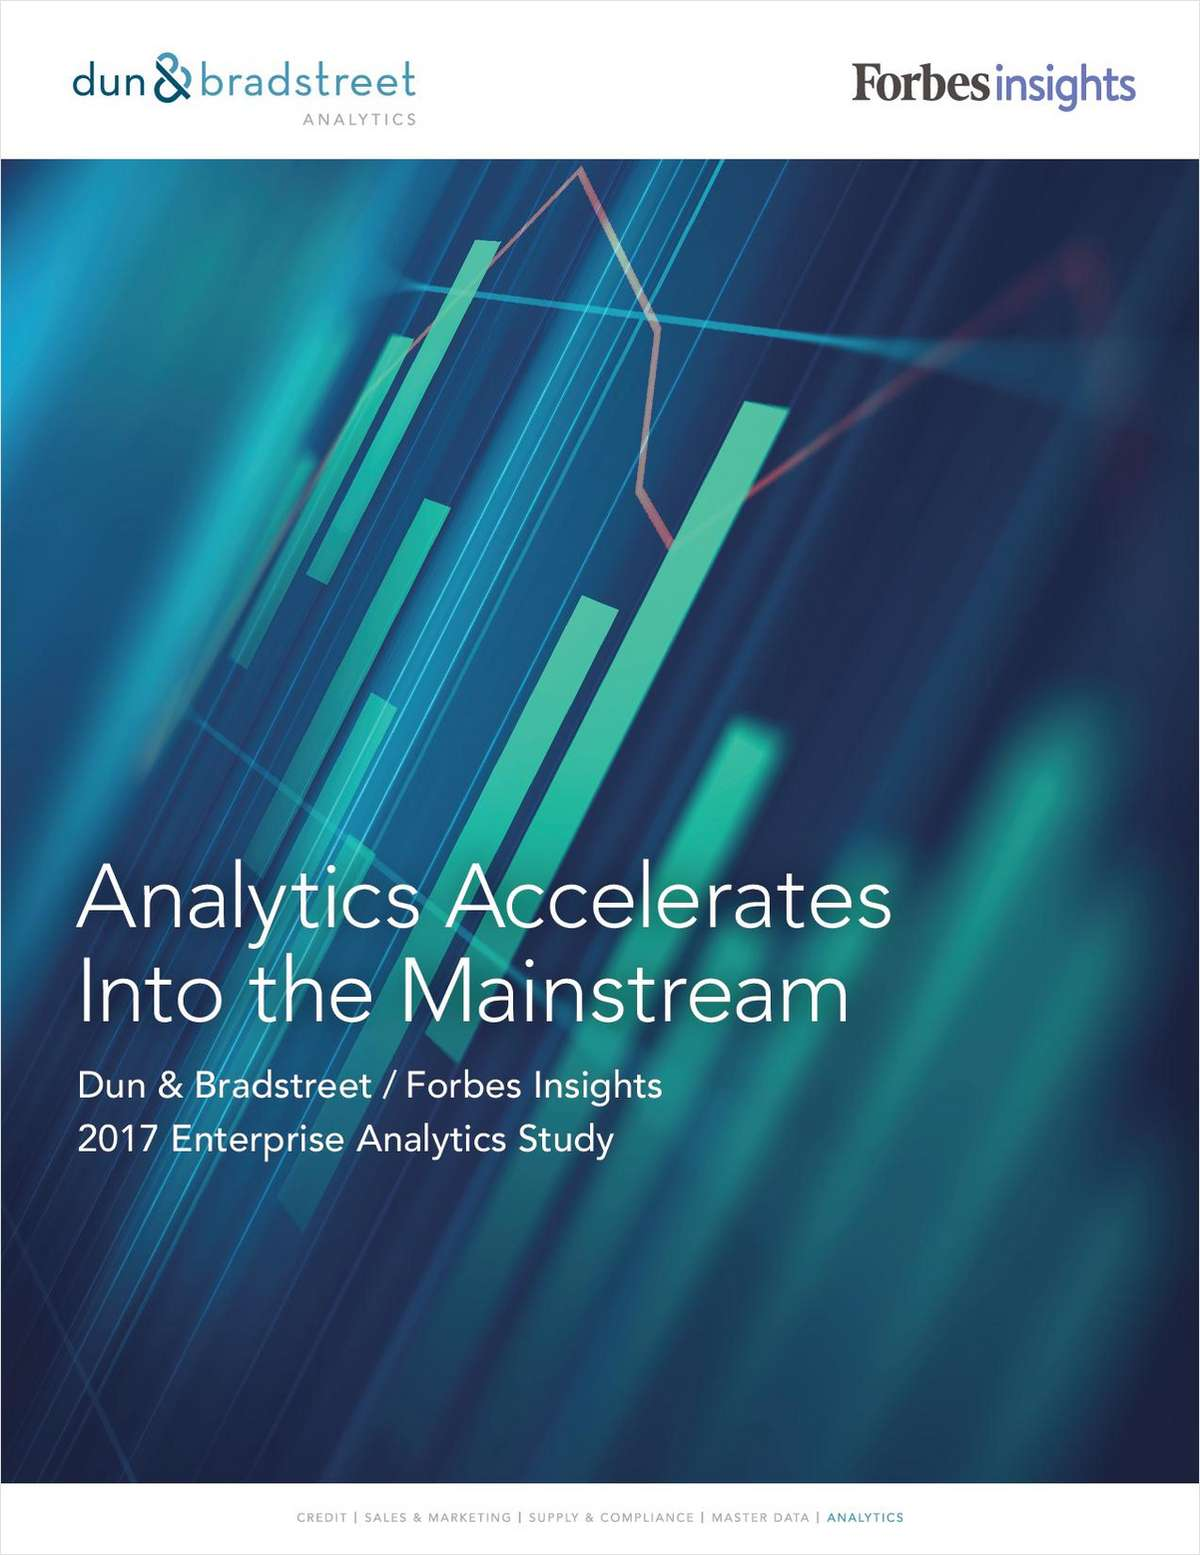 Report: Analytics Accelerates Into the Mainstream